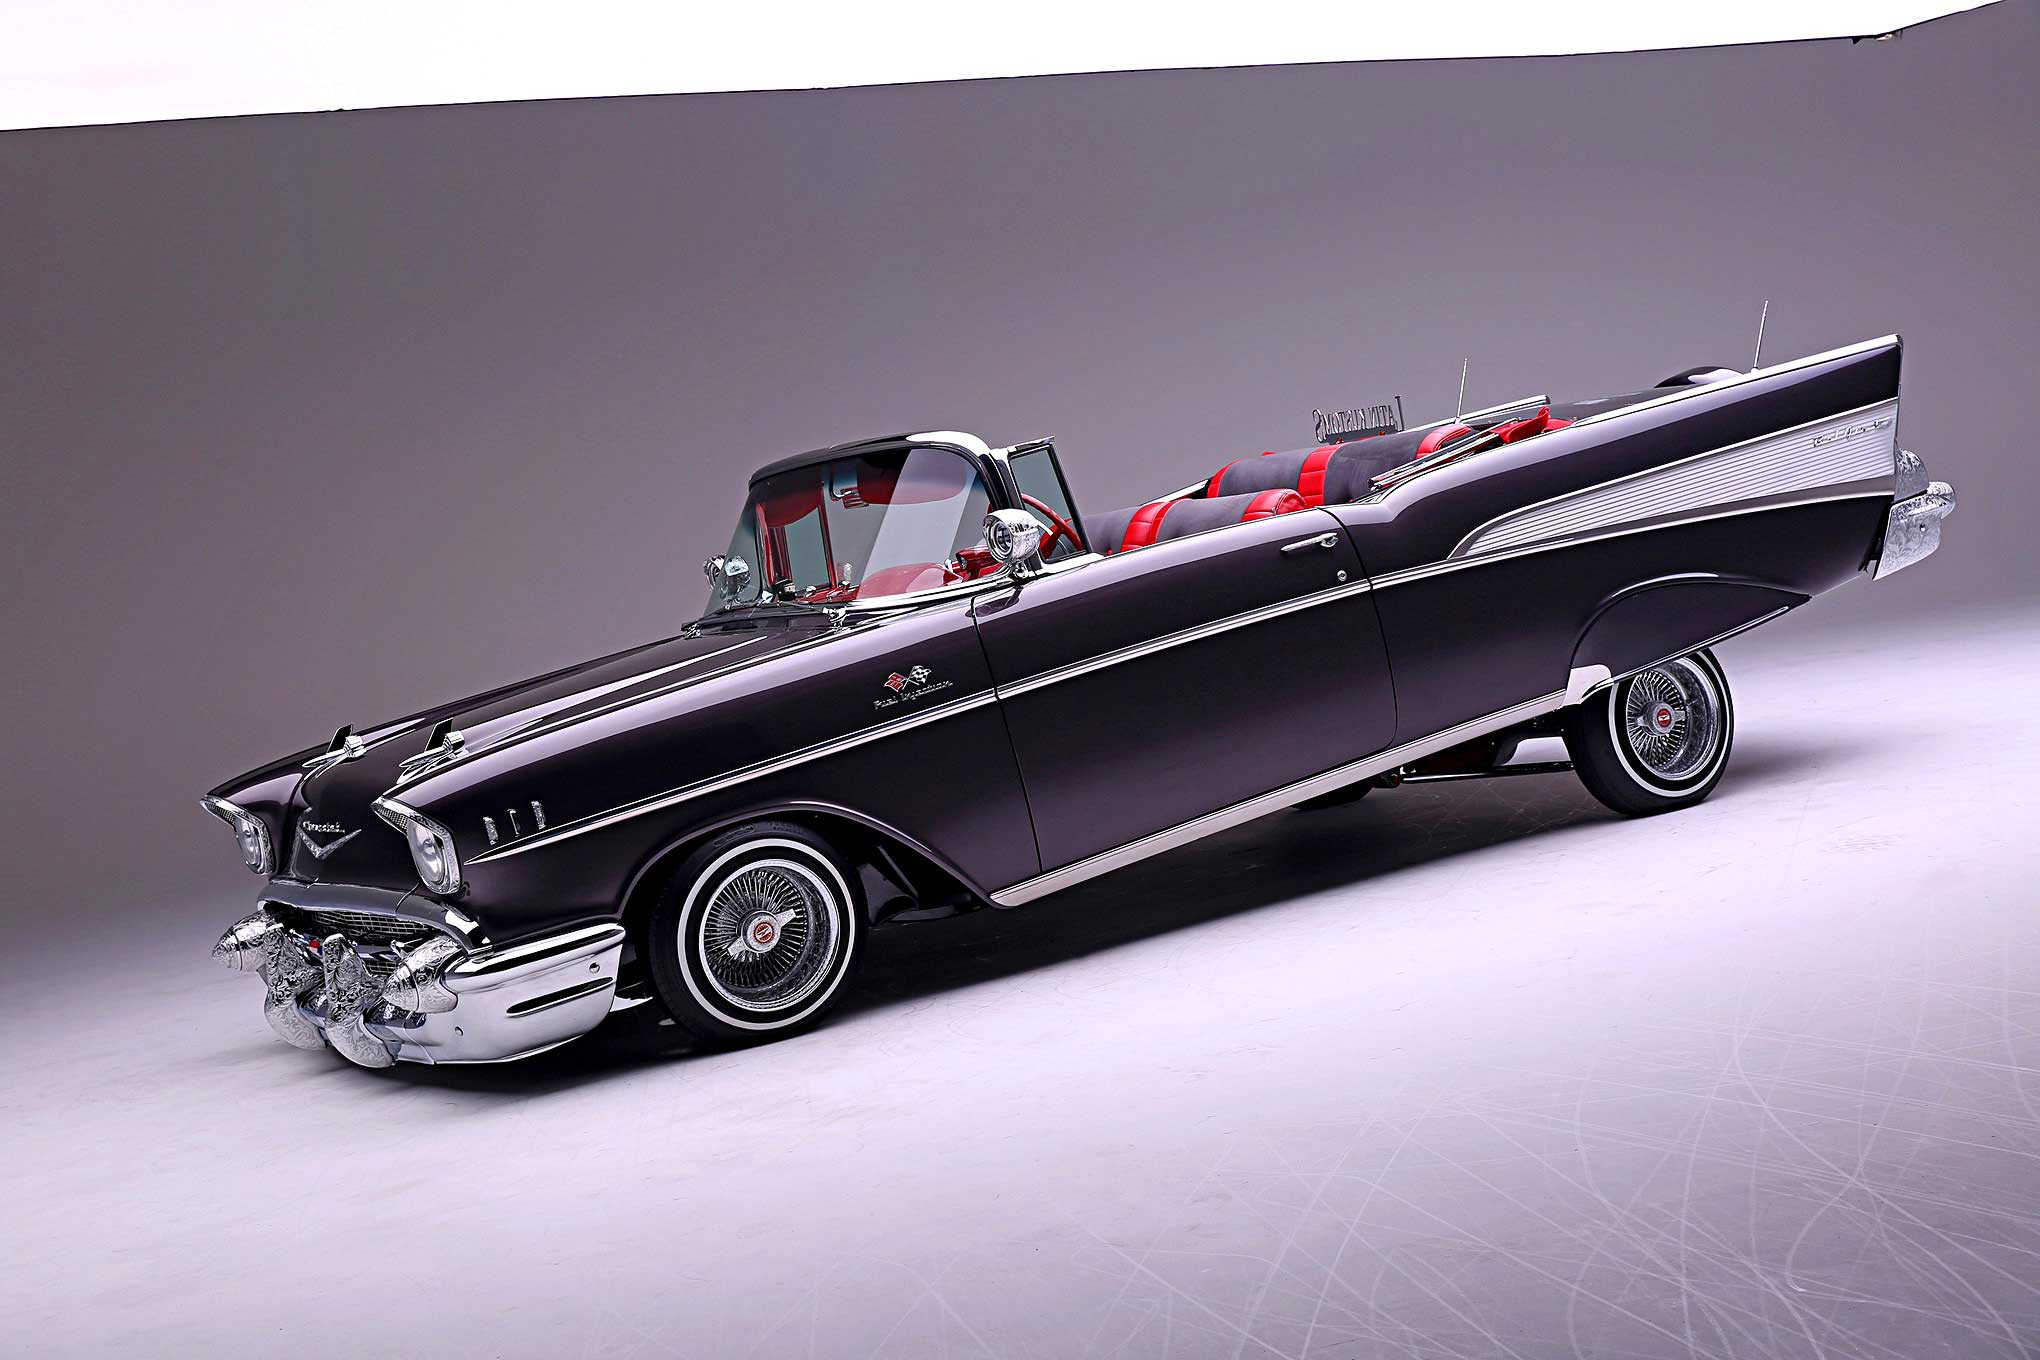 1957 Chevy Bel Air Lifes Temptations 57 Convertible Top Wiring 32 75